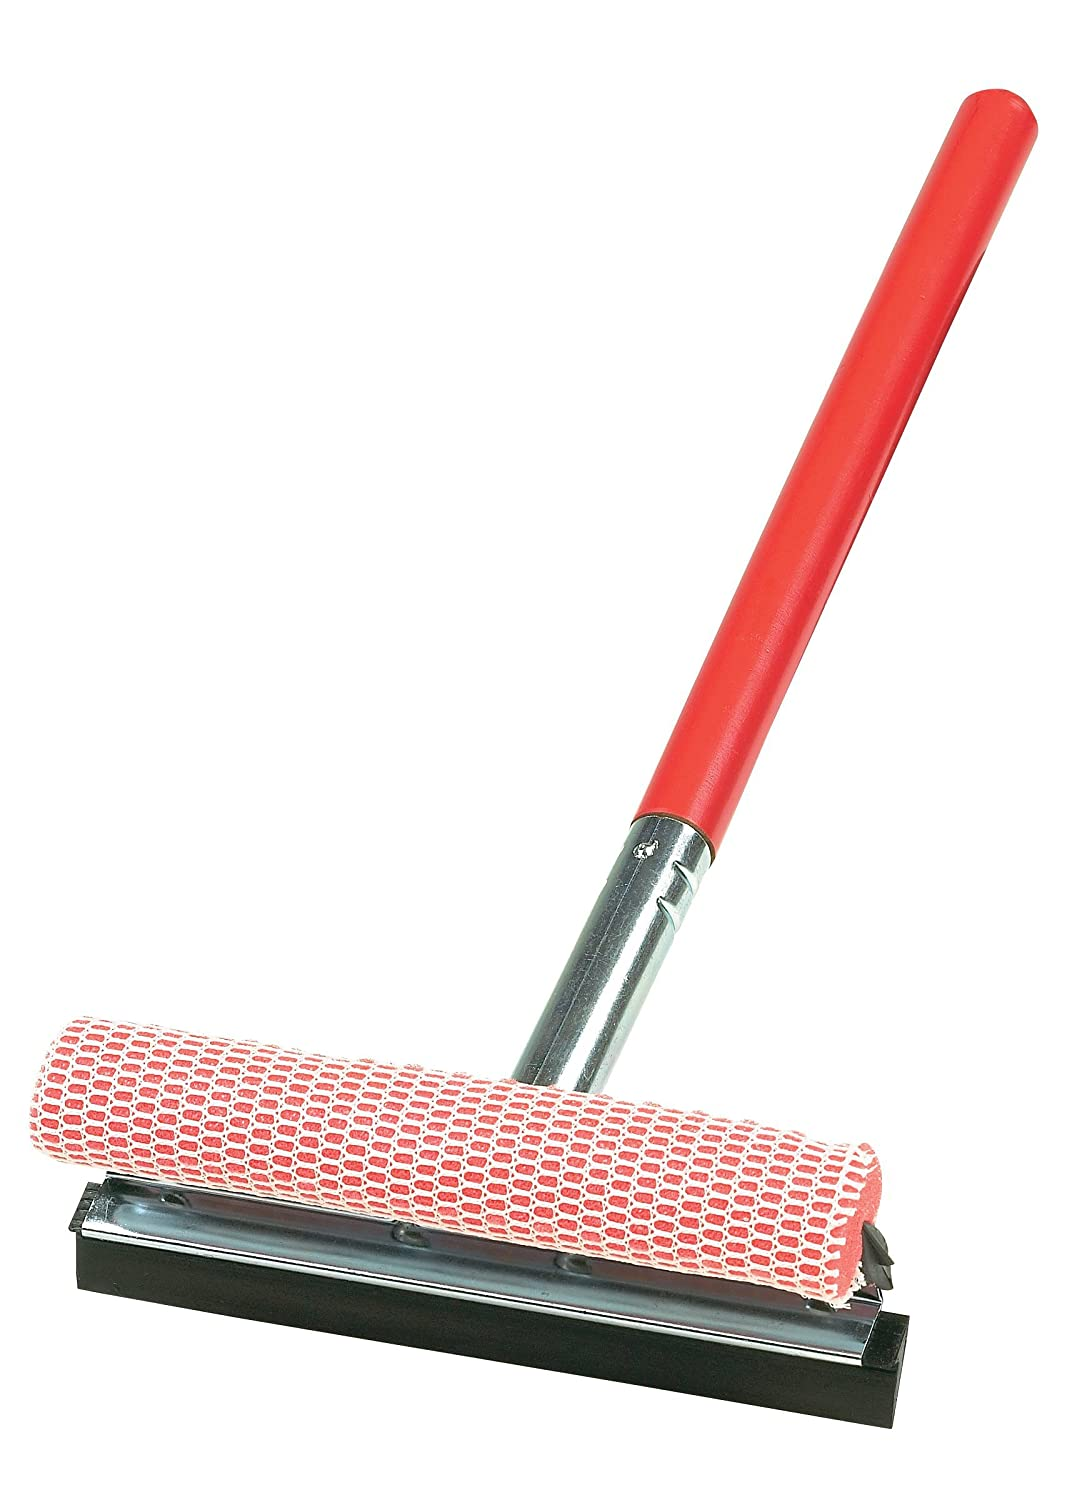 Carrand 94101 Squeegee Bucket with Bracket 1 Gallon